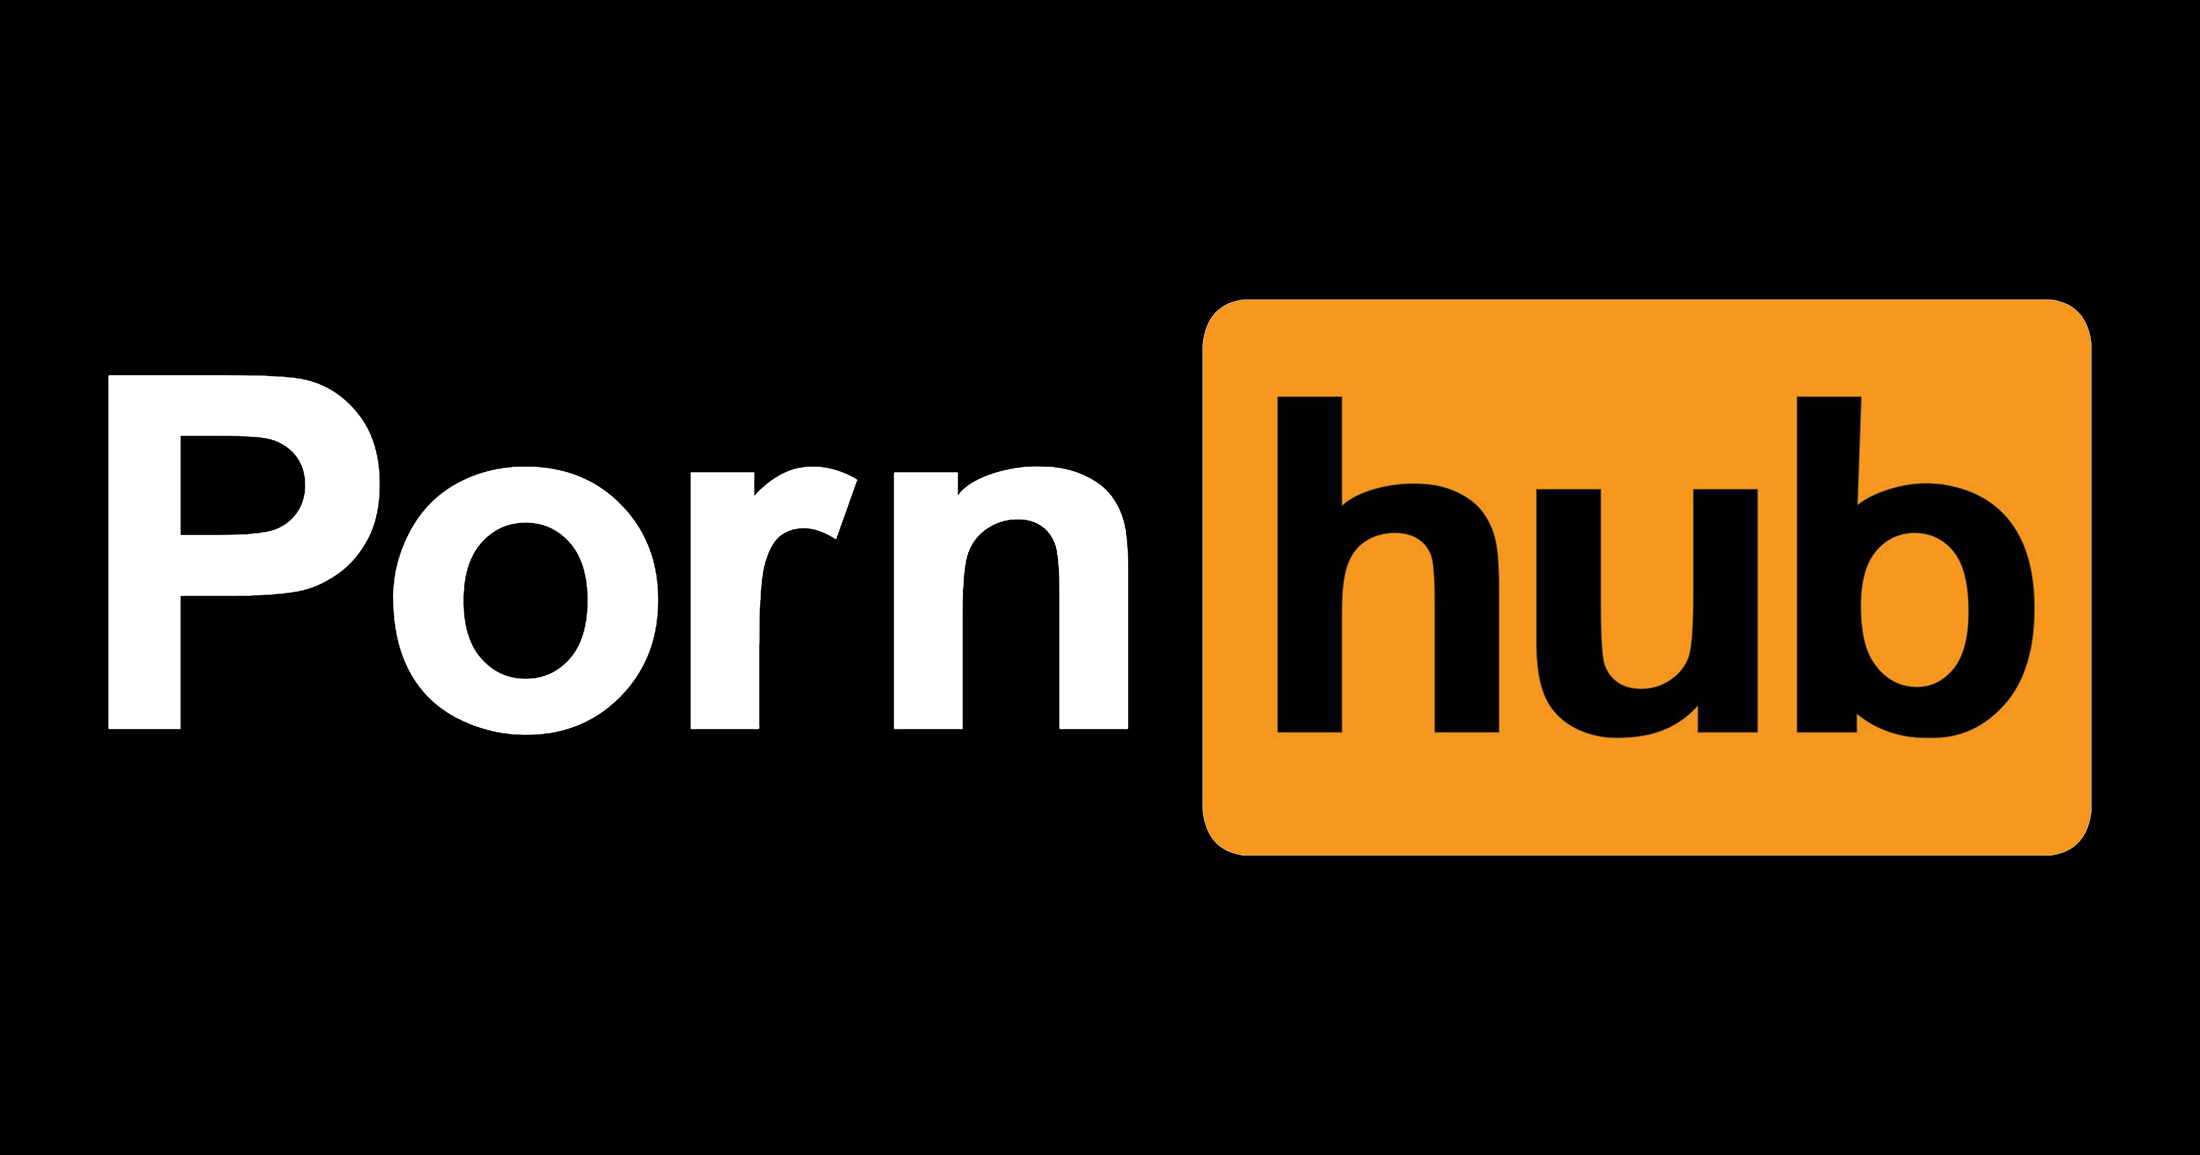 Pornhub Adds USDT (Tether) Crypto Payments, after PayPal Pull-Out